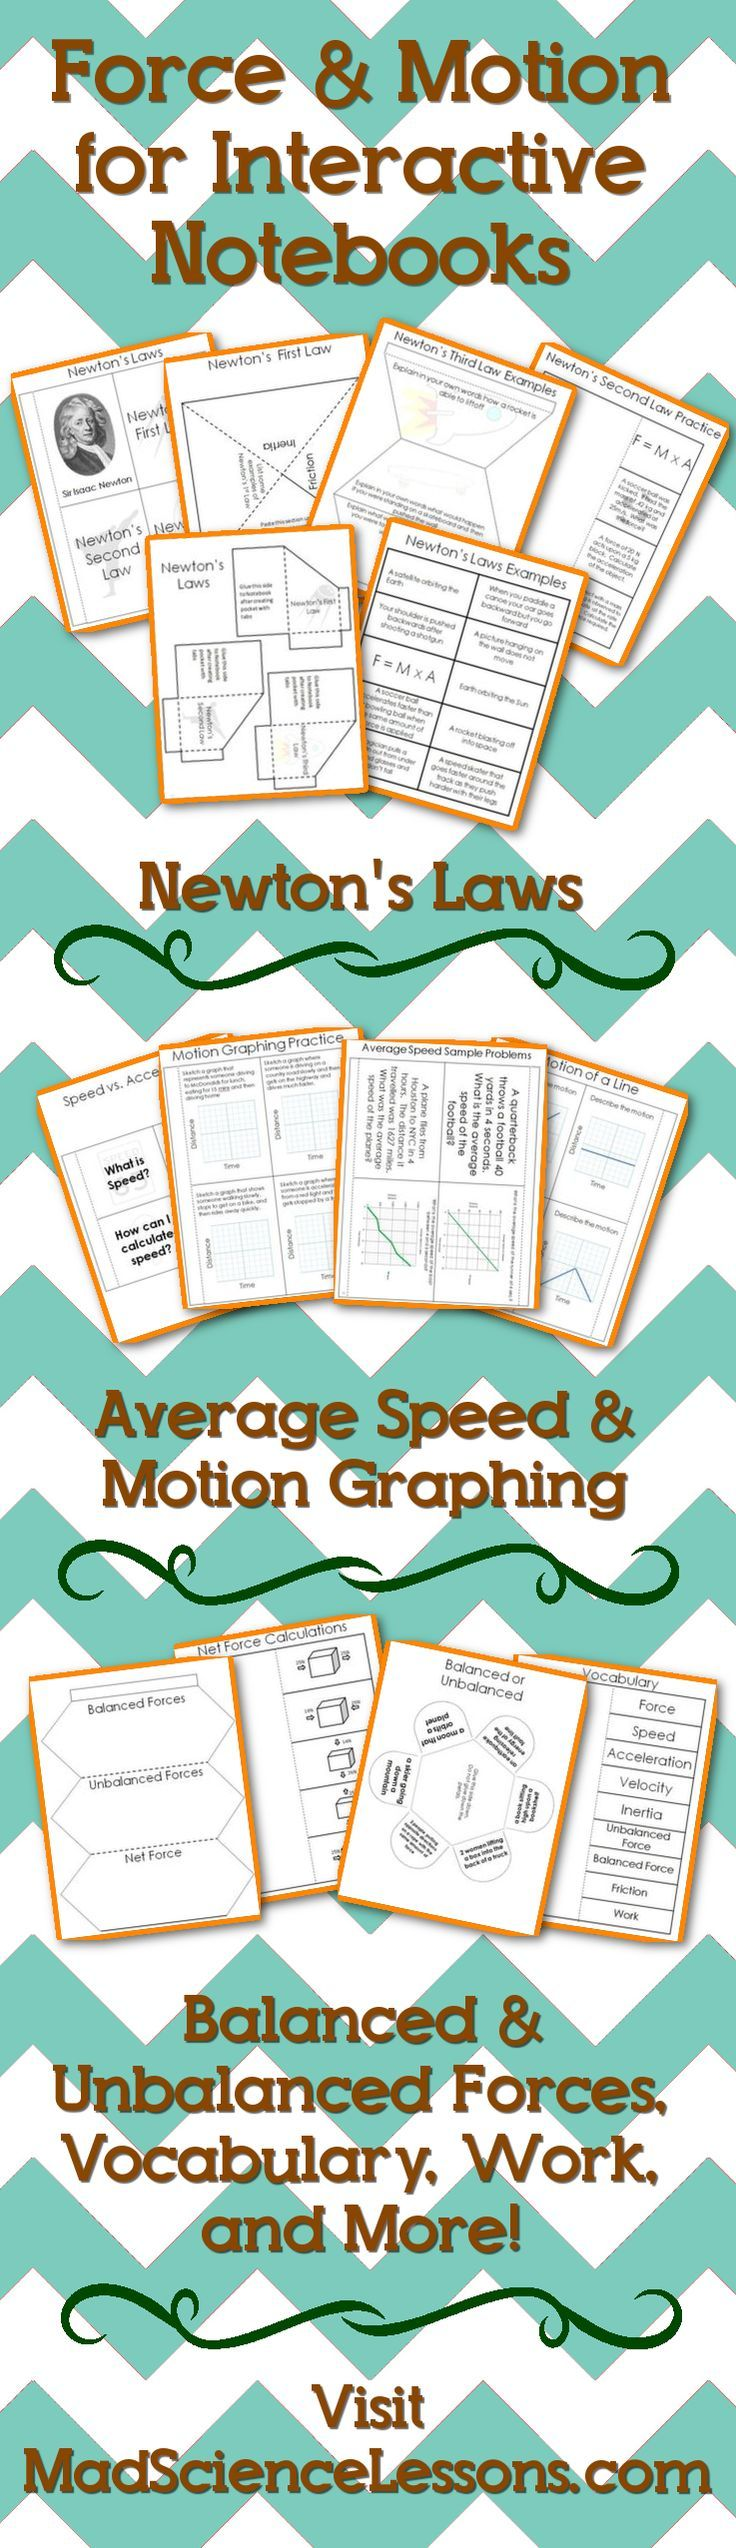 100 net force worksheet physics volkening u0027s physics net force worksheet physics best 25 motion graphs ideas on pinterest motion physics force robcynllc Choice Image